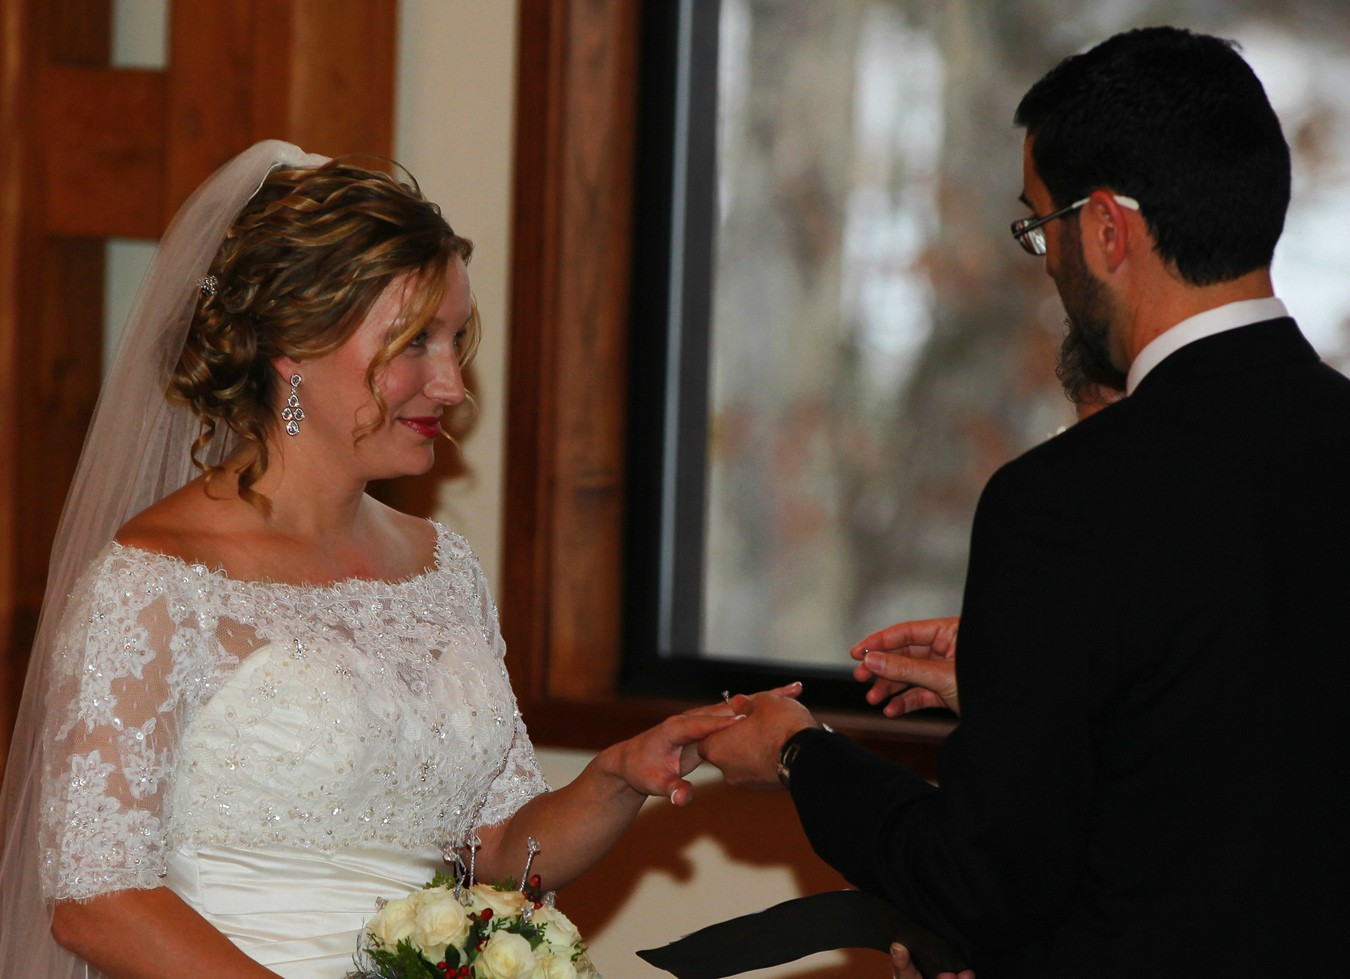 i thee wed img abw author sava gregory and verena